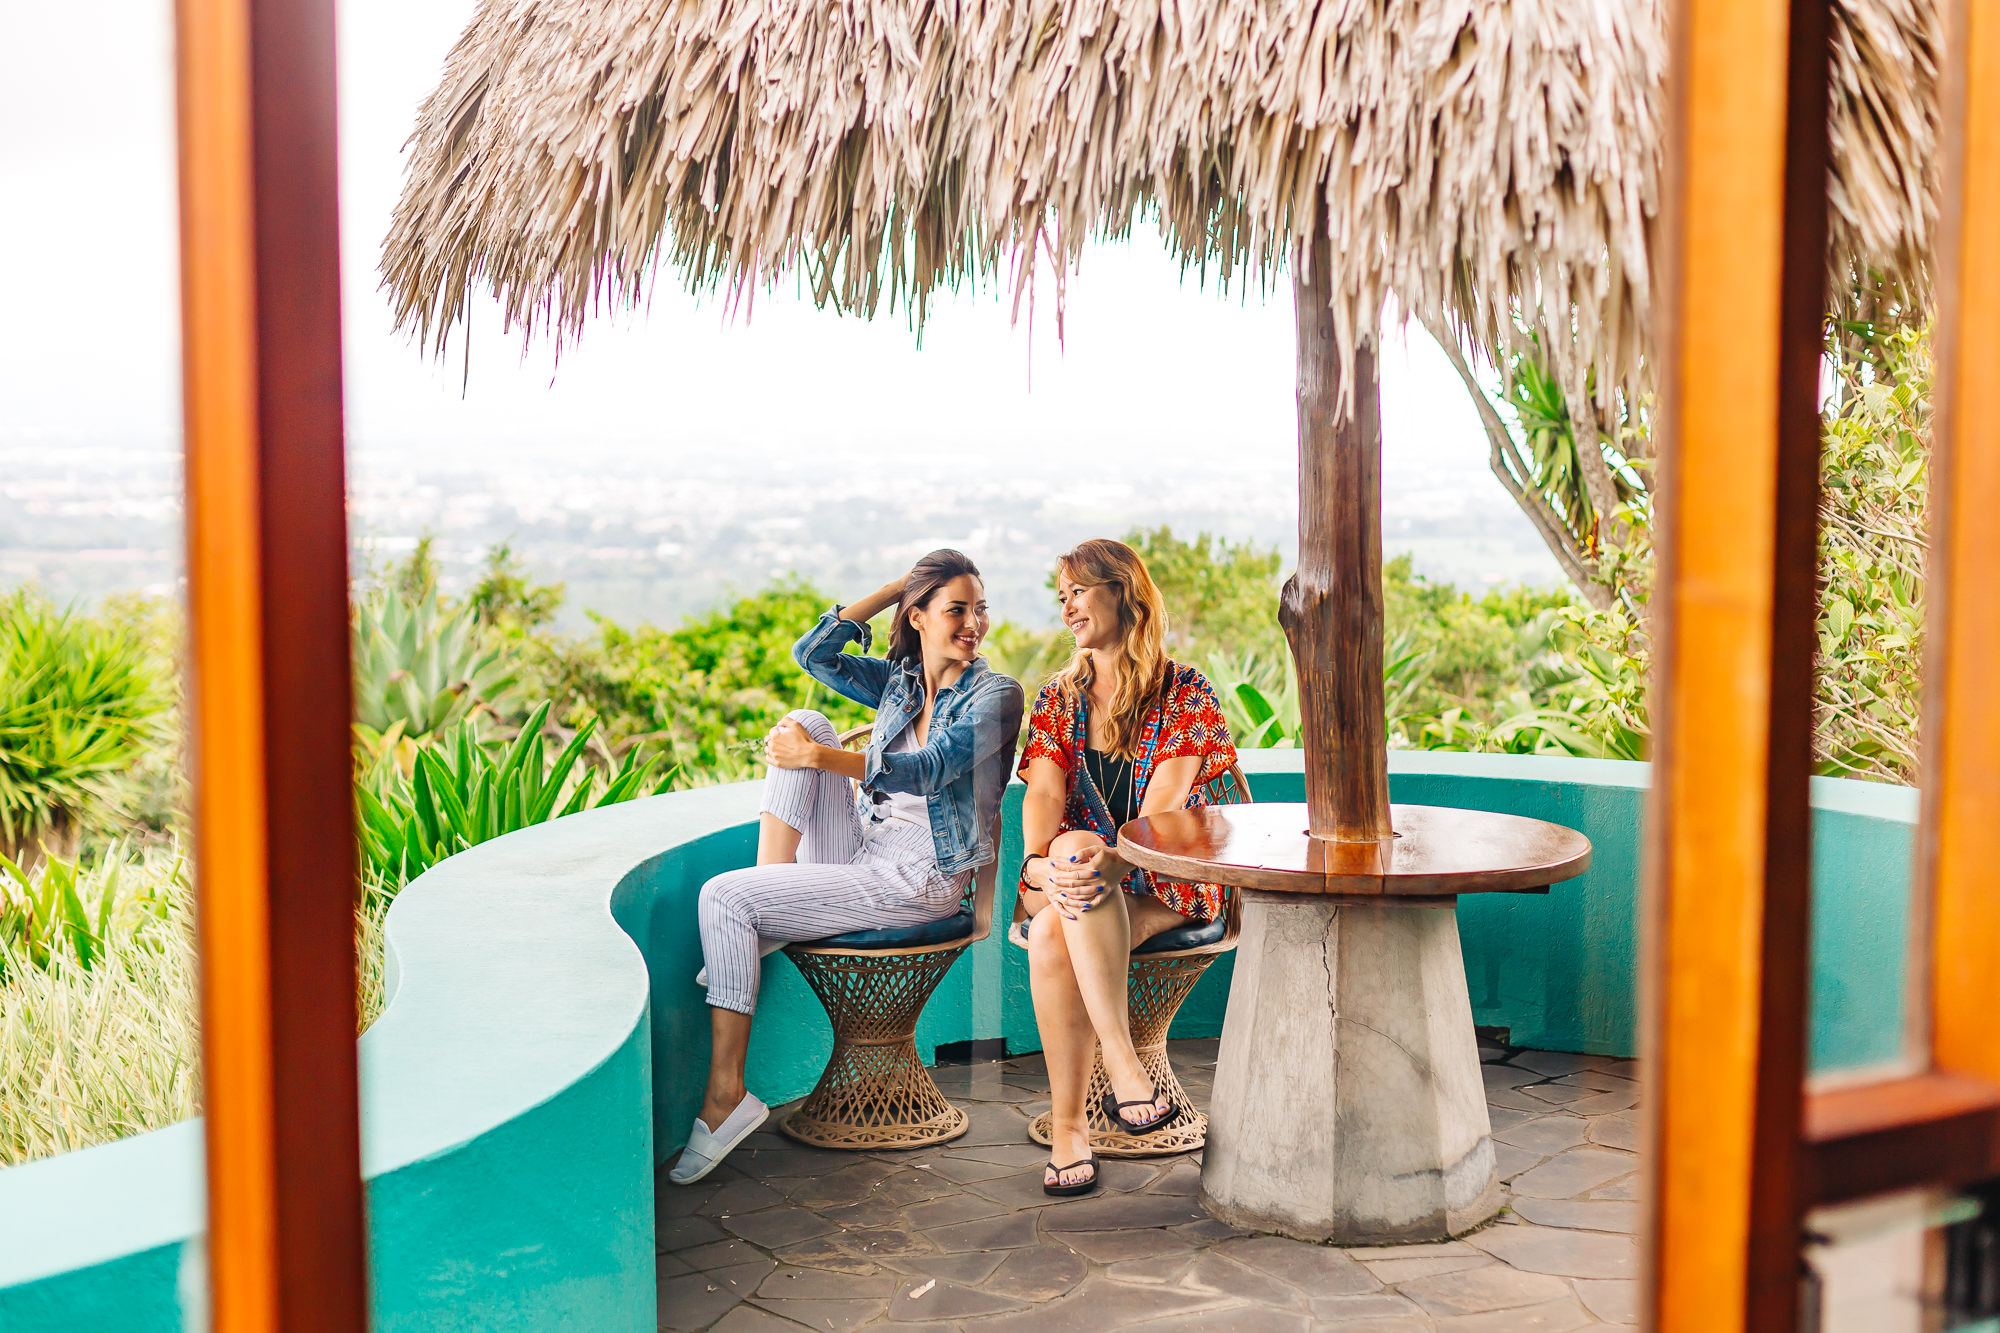 Ou terrace at   Xandari Resort and Spa  overlooking the Central Valley of Costa Rica